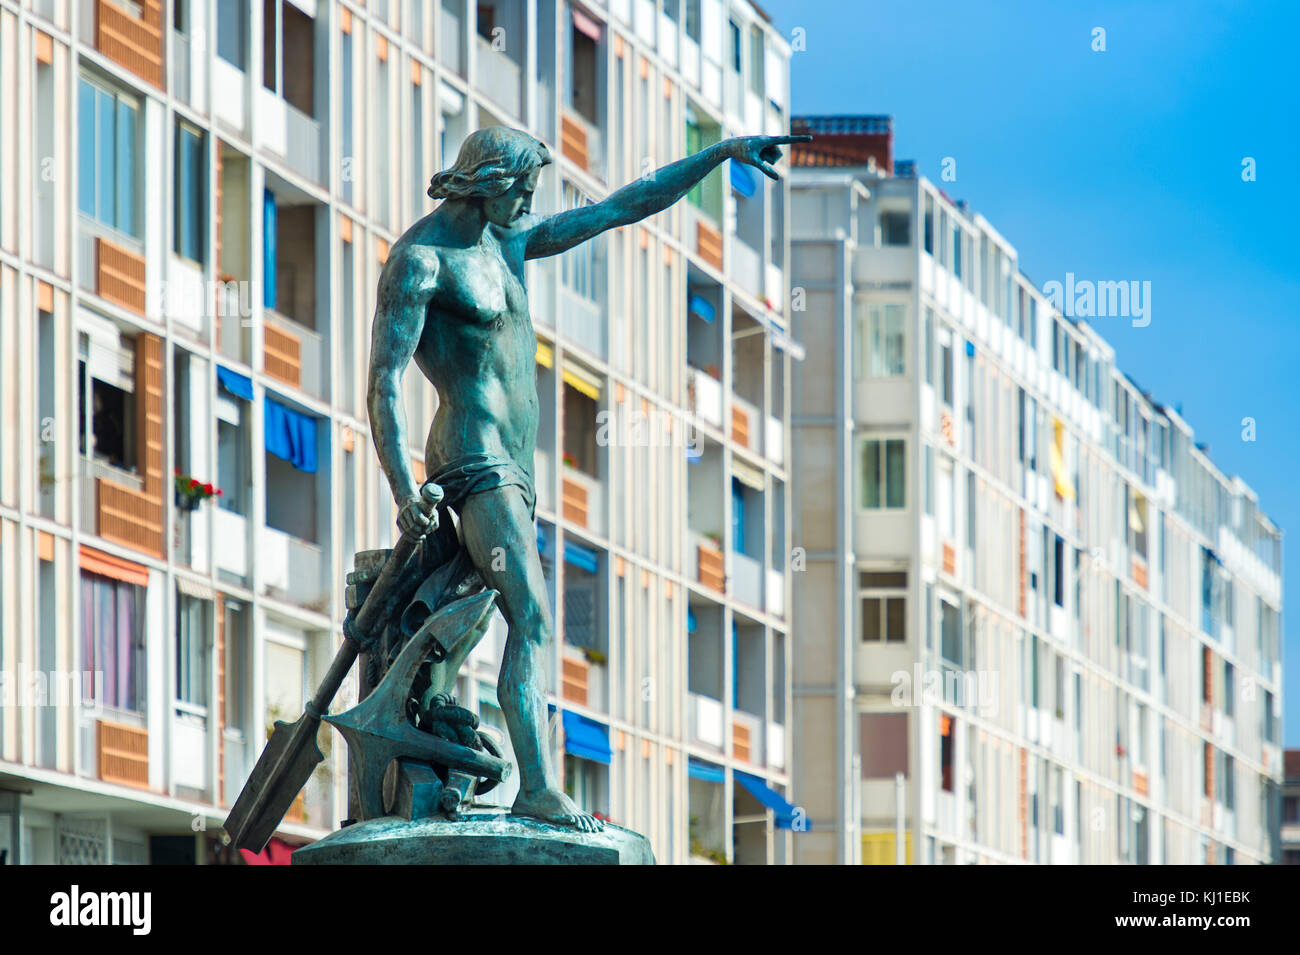 Europe, France, Var, Toulon. Quai Cronstadt statue of the Genius of navigation, work of the sculptor Louis-Joseph - Stock Image